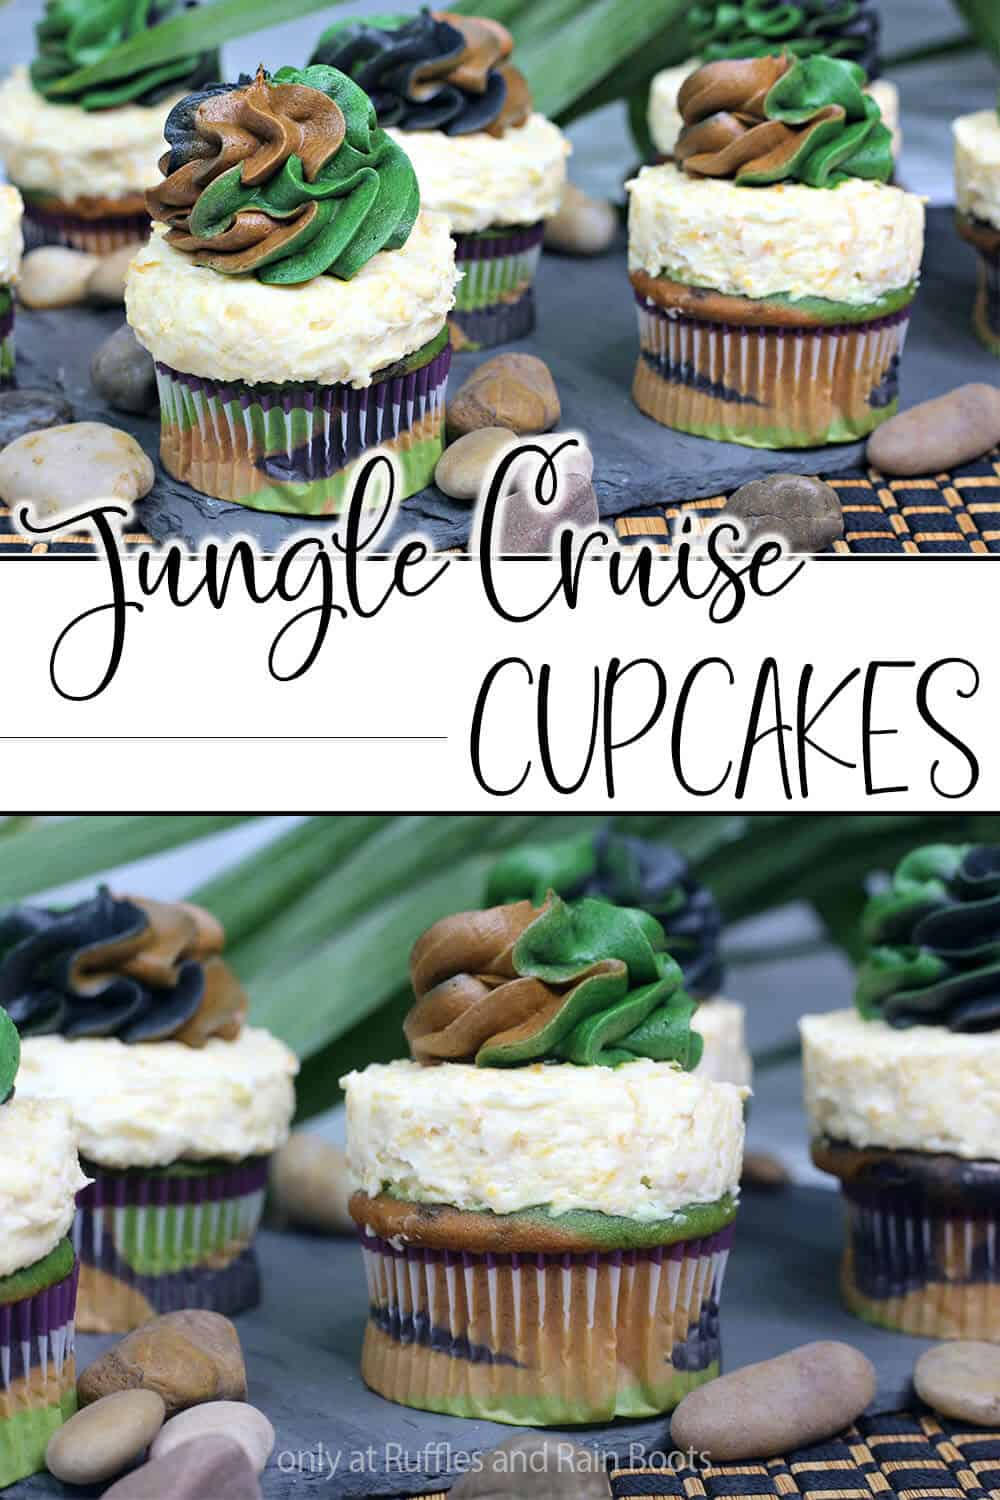 photo collage of disney cupcakes for disney jungle cruise with text which reads jungle cruise cupcakes